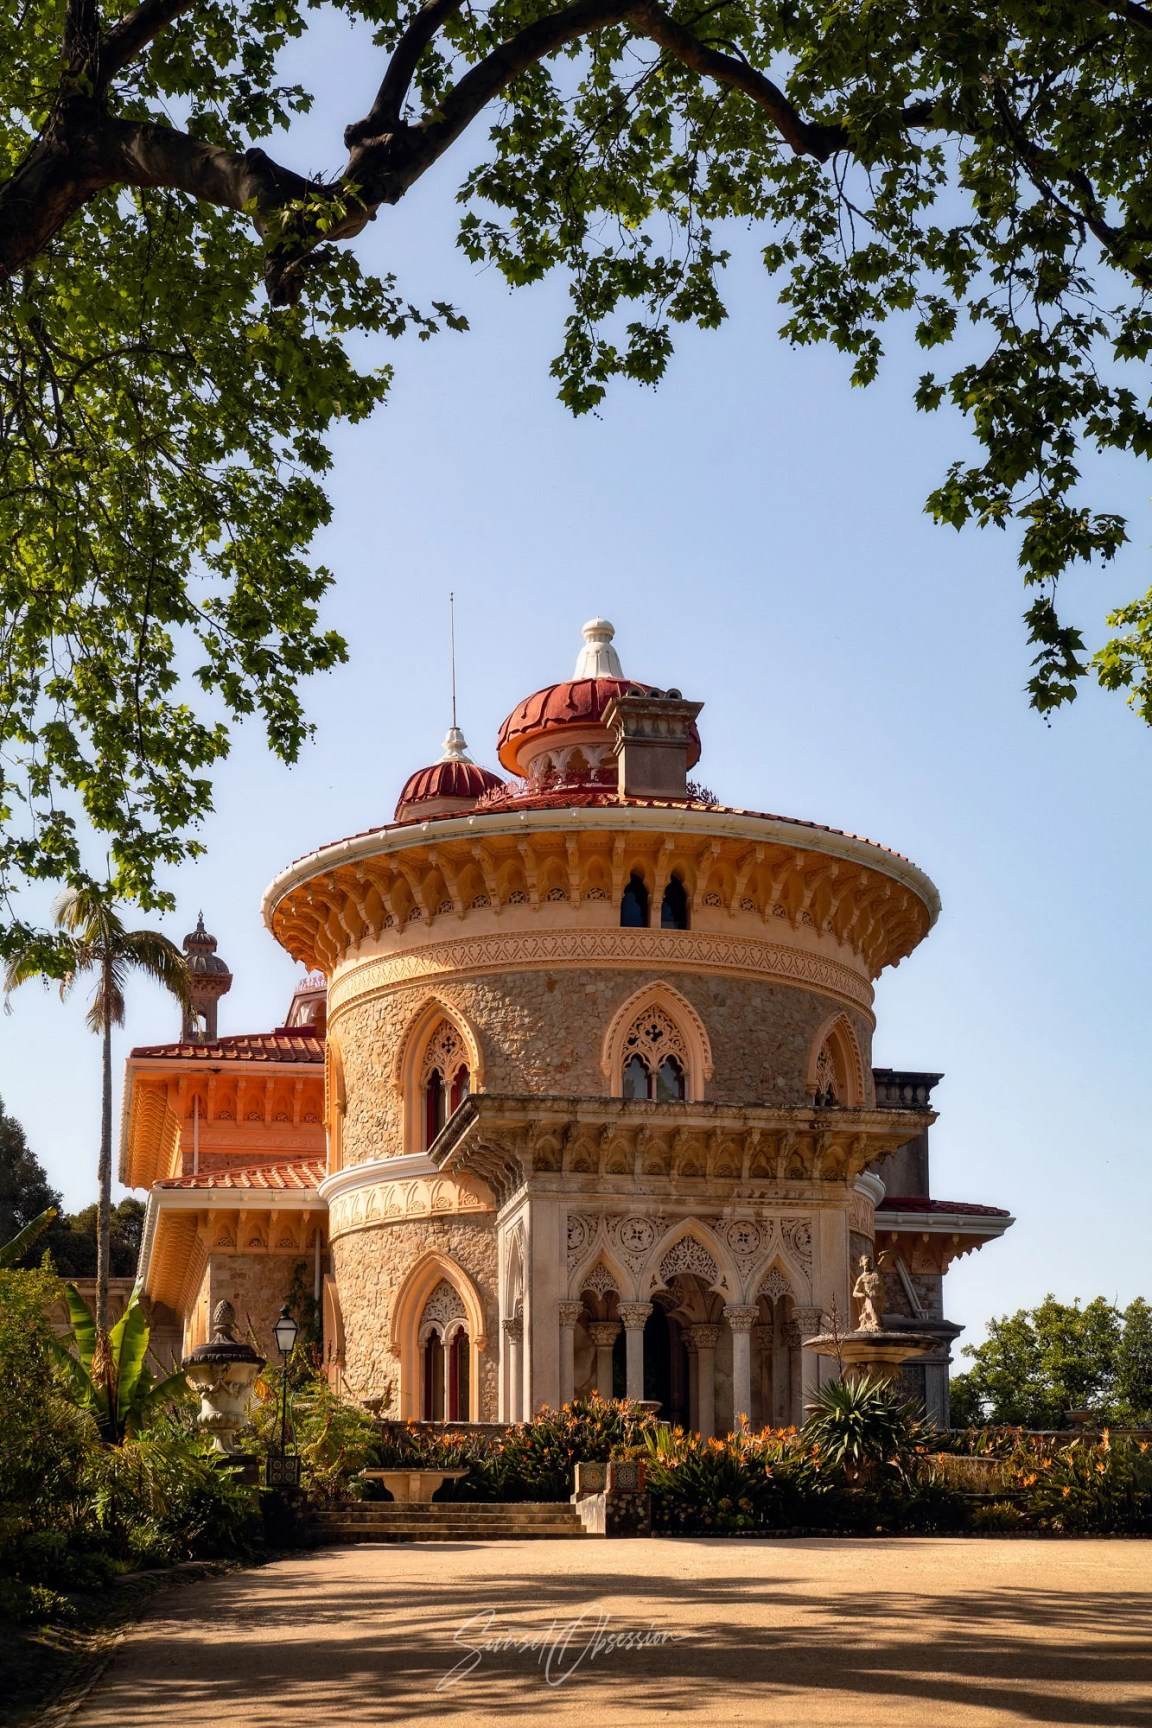 Monserrate and its gardens are a perfect photo spot for the early evening in Sintra